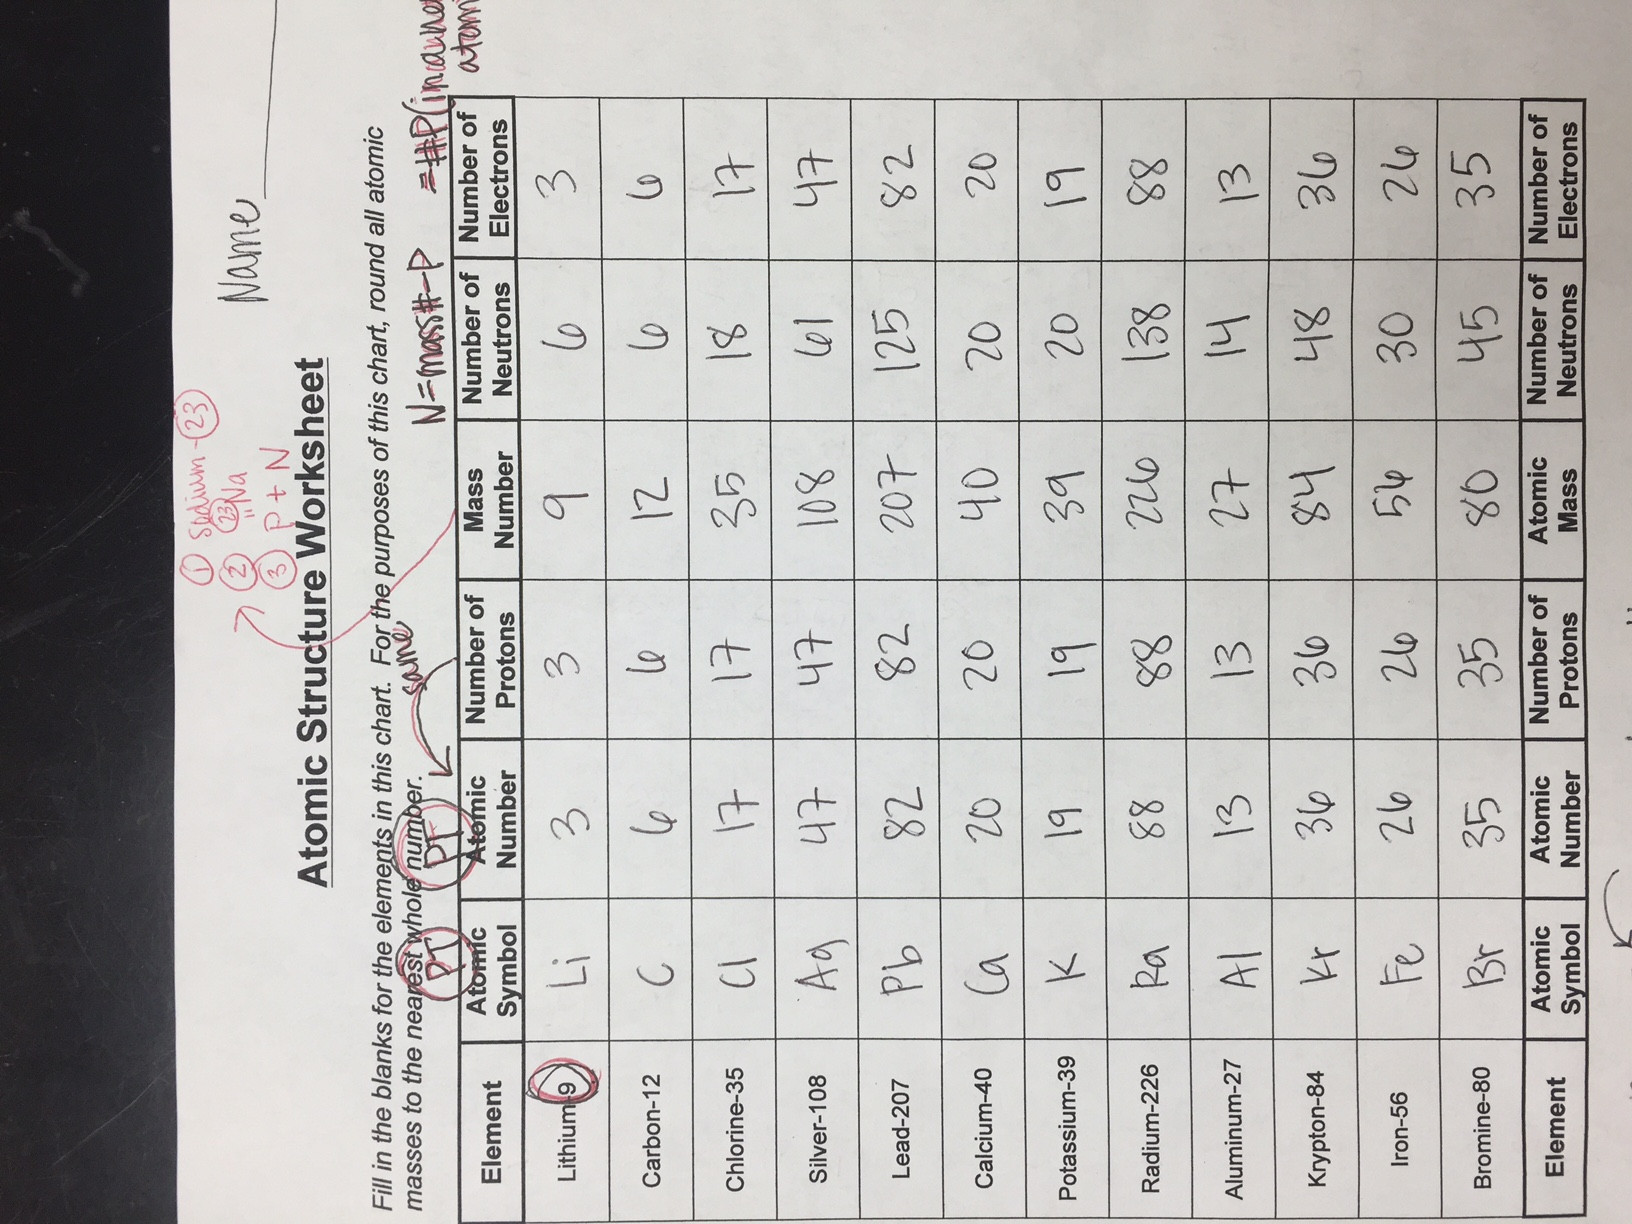 Atoms and Ions Worksheet Answers Unit 2 atomic Structure Ms Holl S Physical Science Class